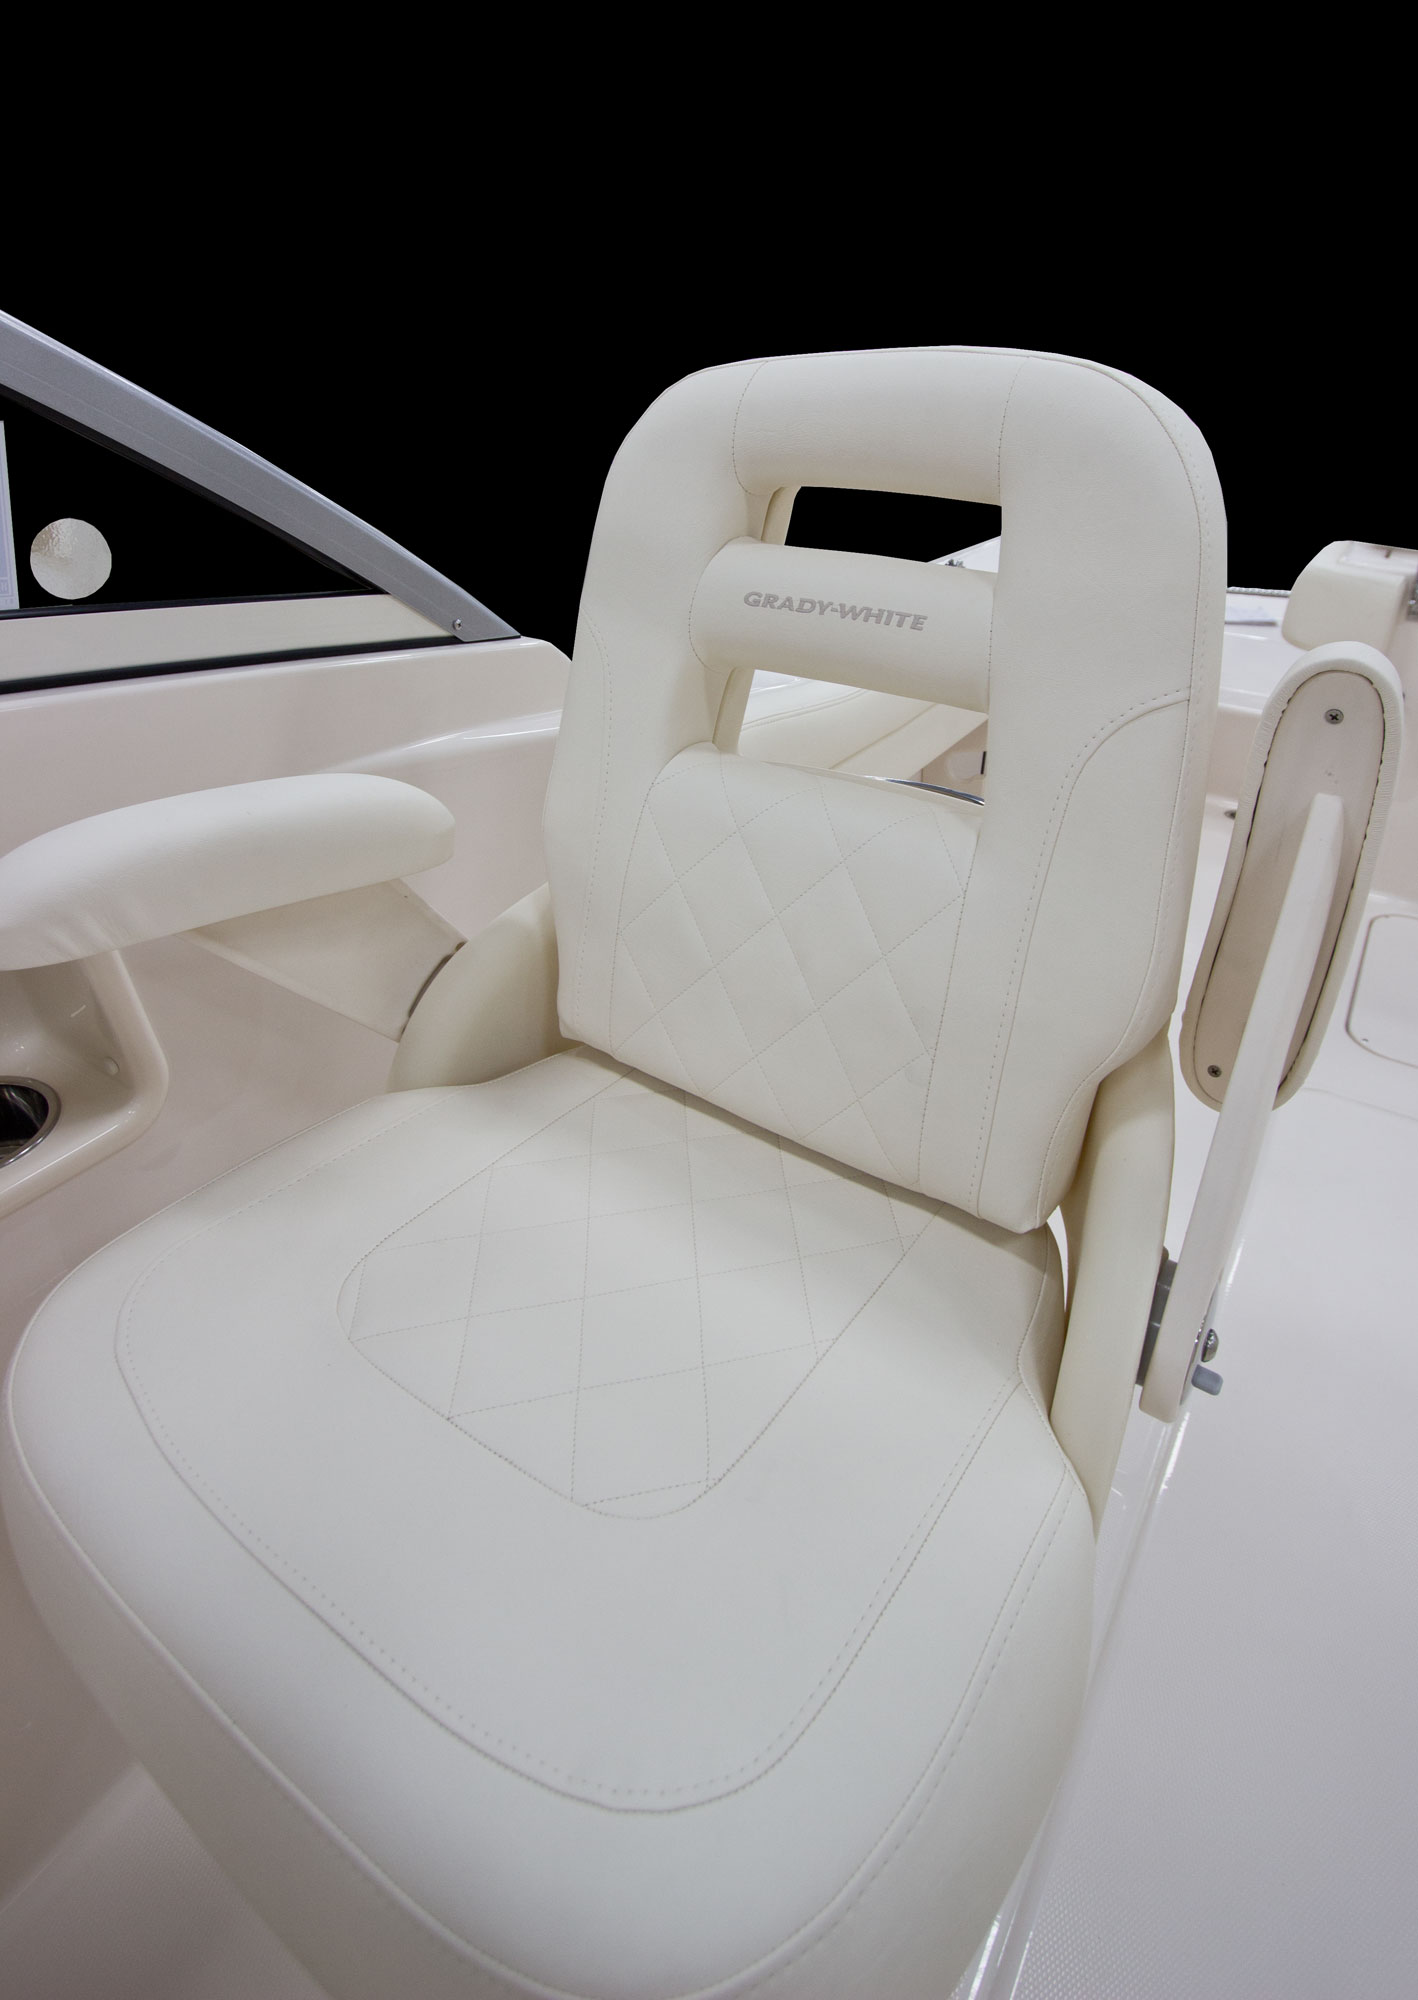 Grady-White Freedom 255 25-foot dual console deluxe seating